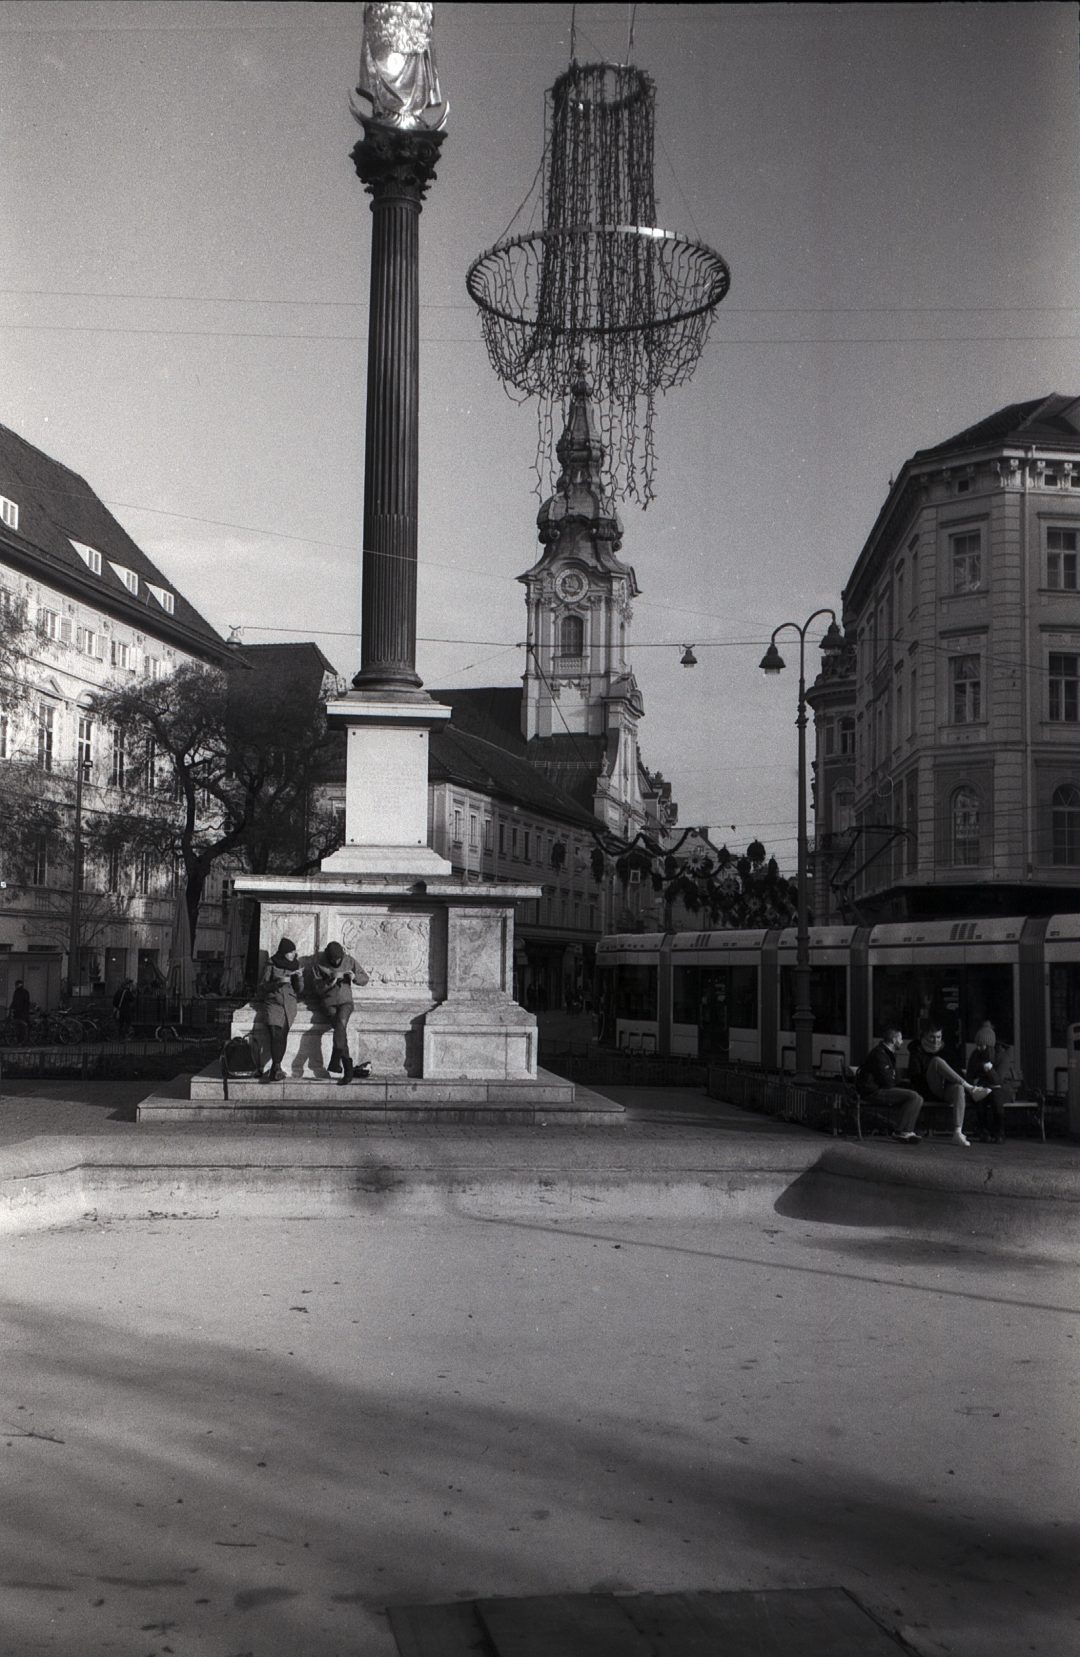 #011 Film per day – Outdoor dining by the fountain, Graz